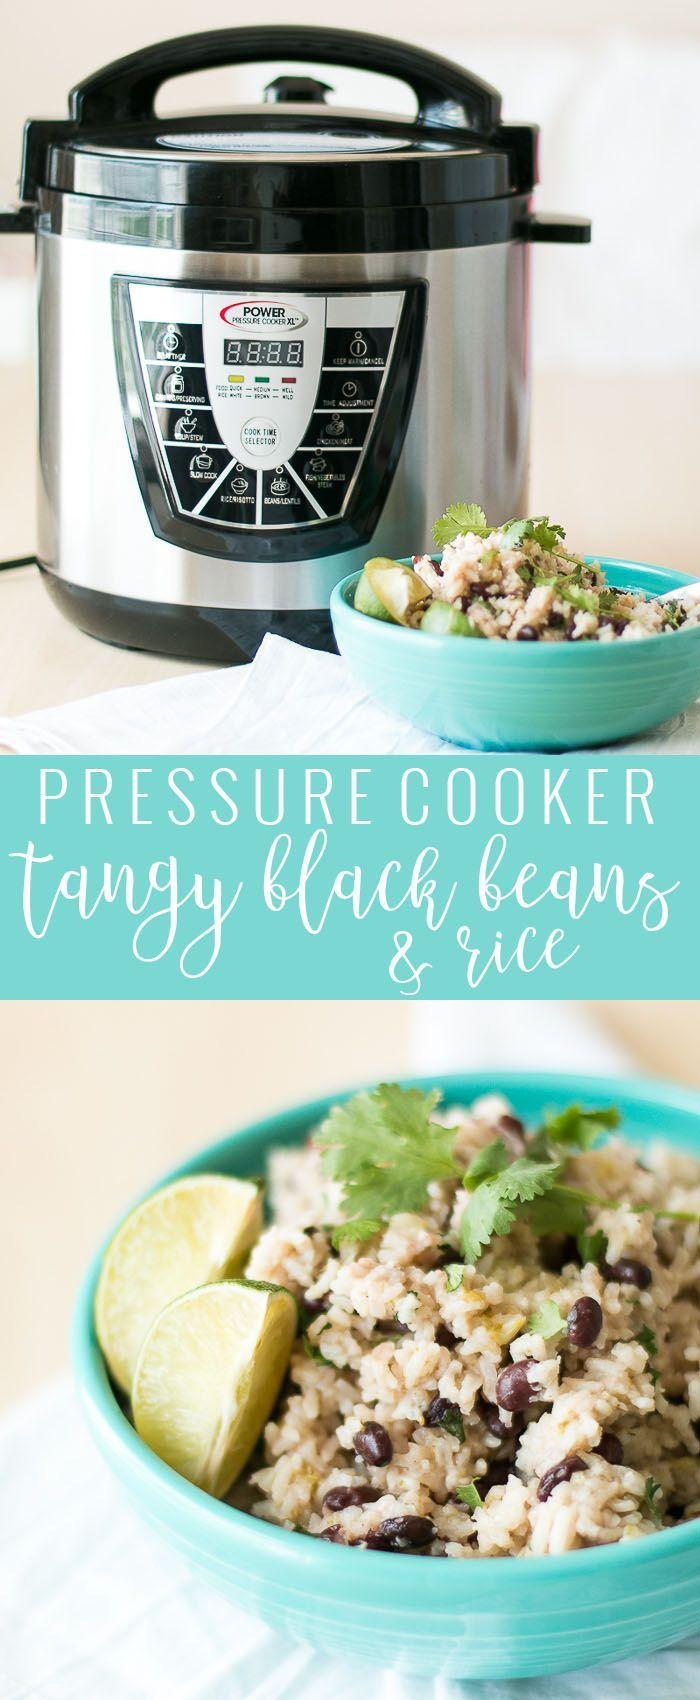 Pressure Cooker Black Beans And Rice  How To Make Black Beans In A  Pressure Cooker